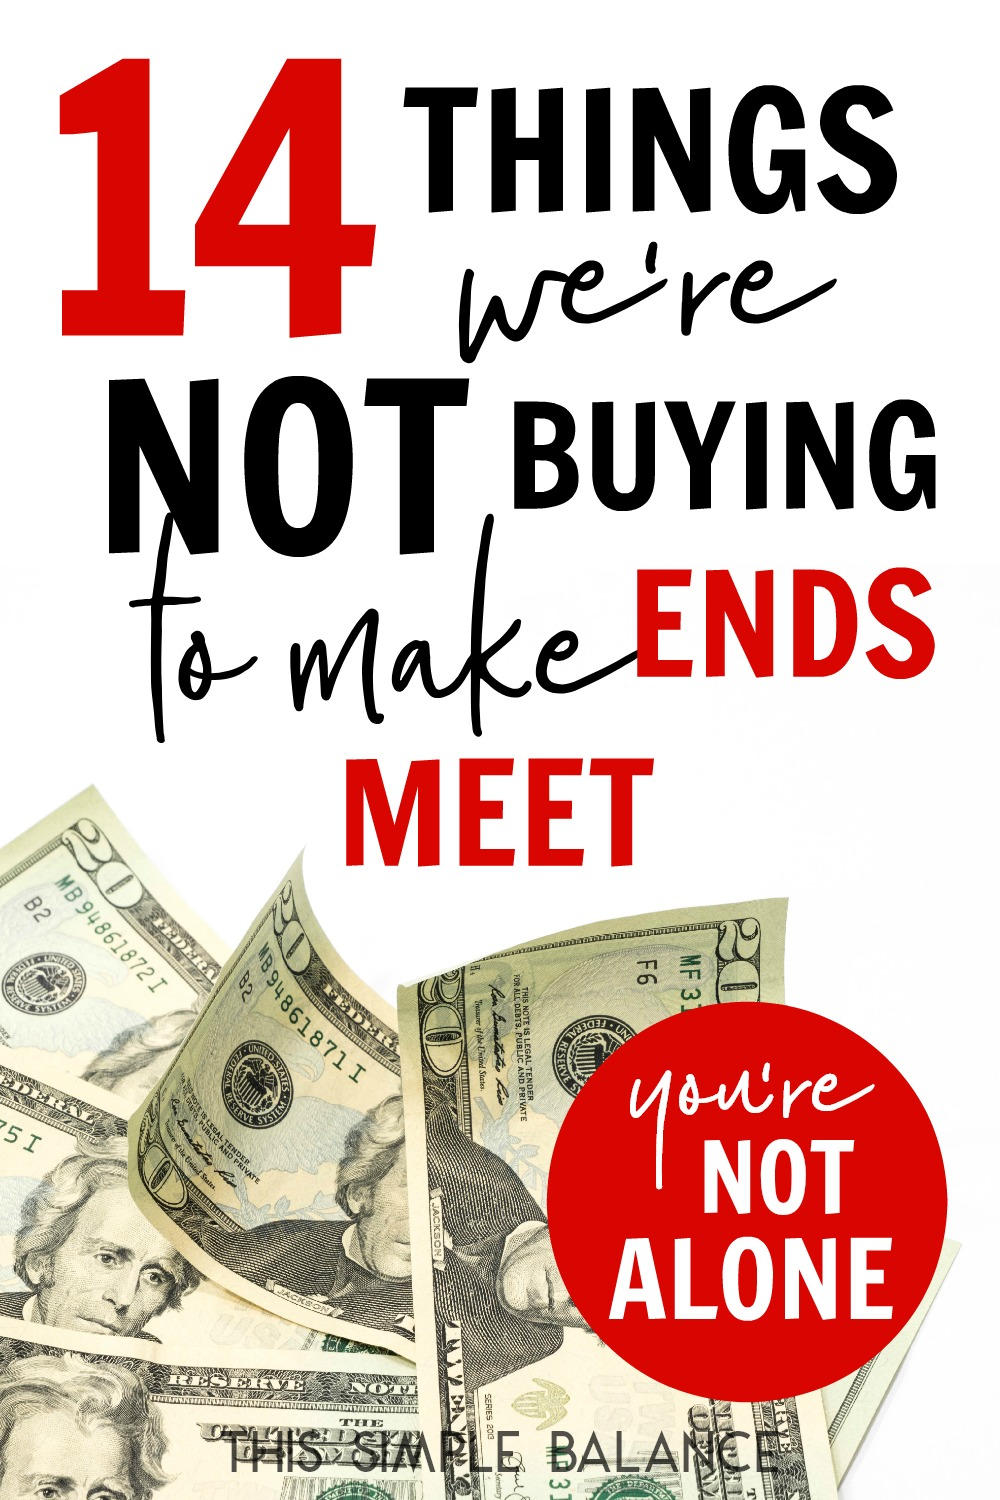 Trying to make ends meet and the sacrifices are getting old? Take heart! You are not alone. Here are a few things we aren't buying these days to in order to pay the bills - from the significant to the trivial.